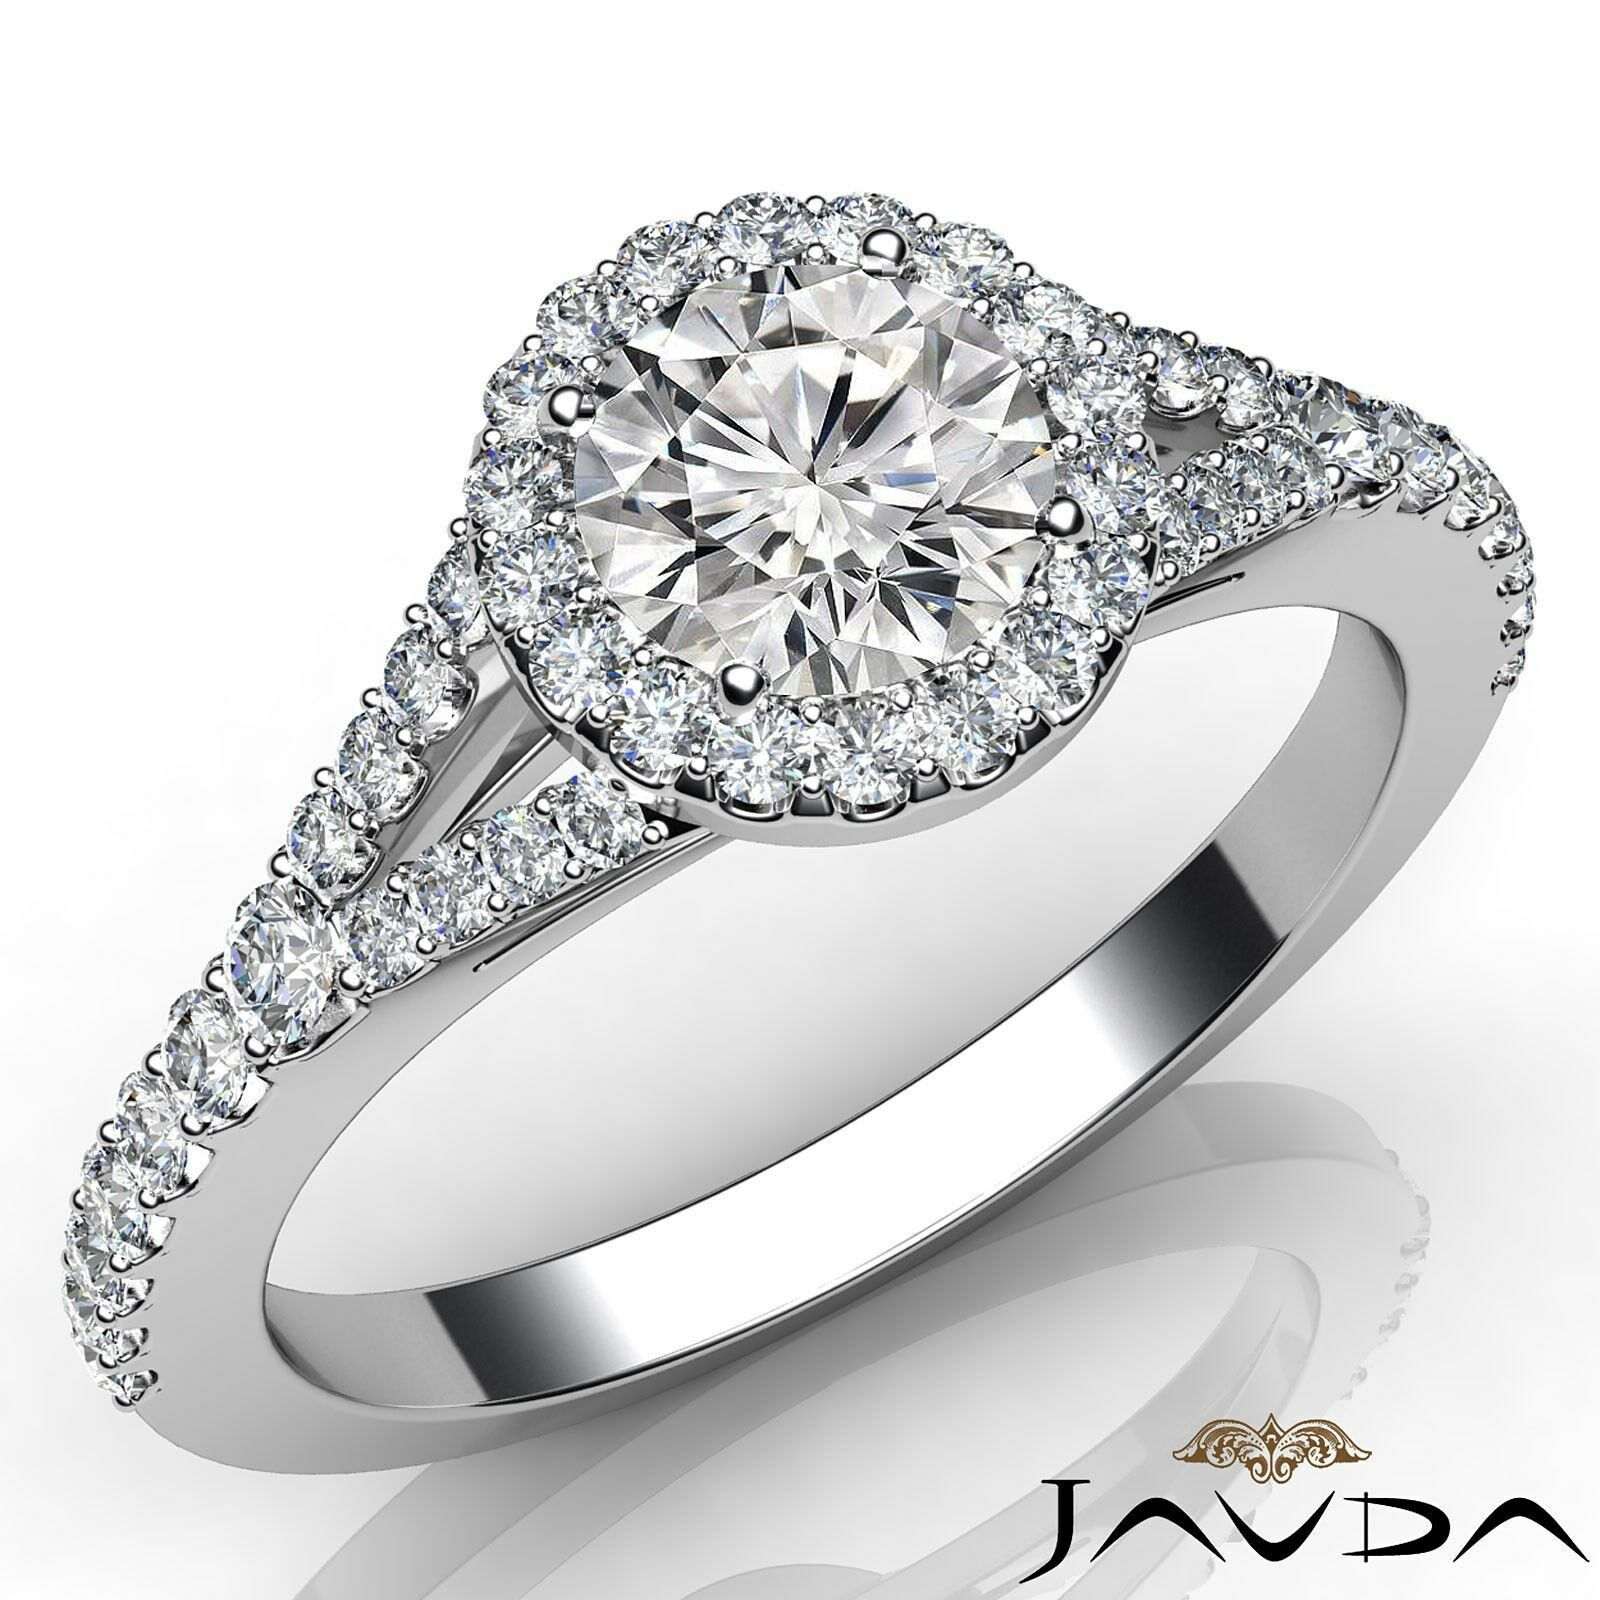 French U Pave Halo Round Shape Diamond Engagement Split Shank Ring GIA E SI1 1Ct